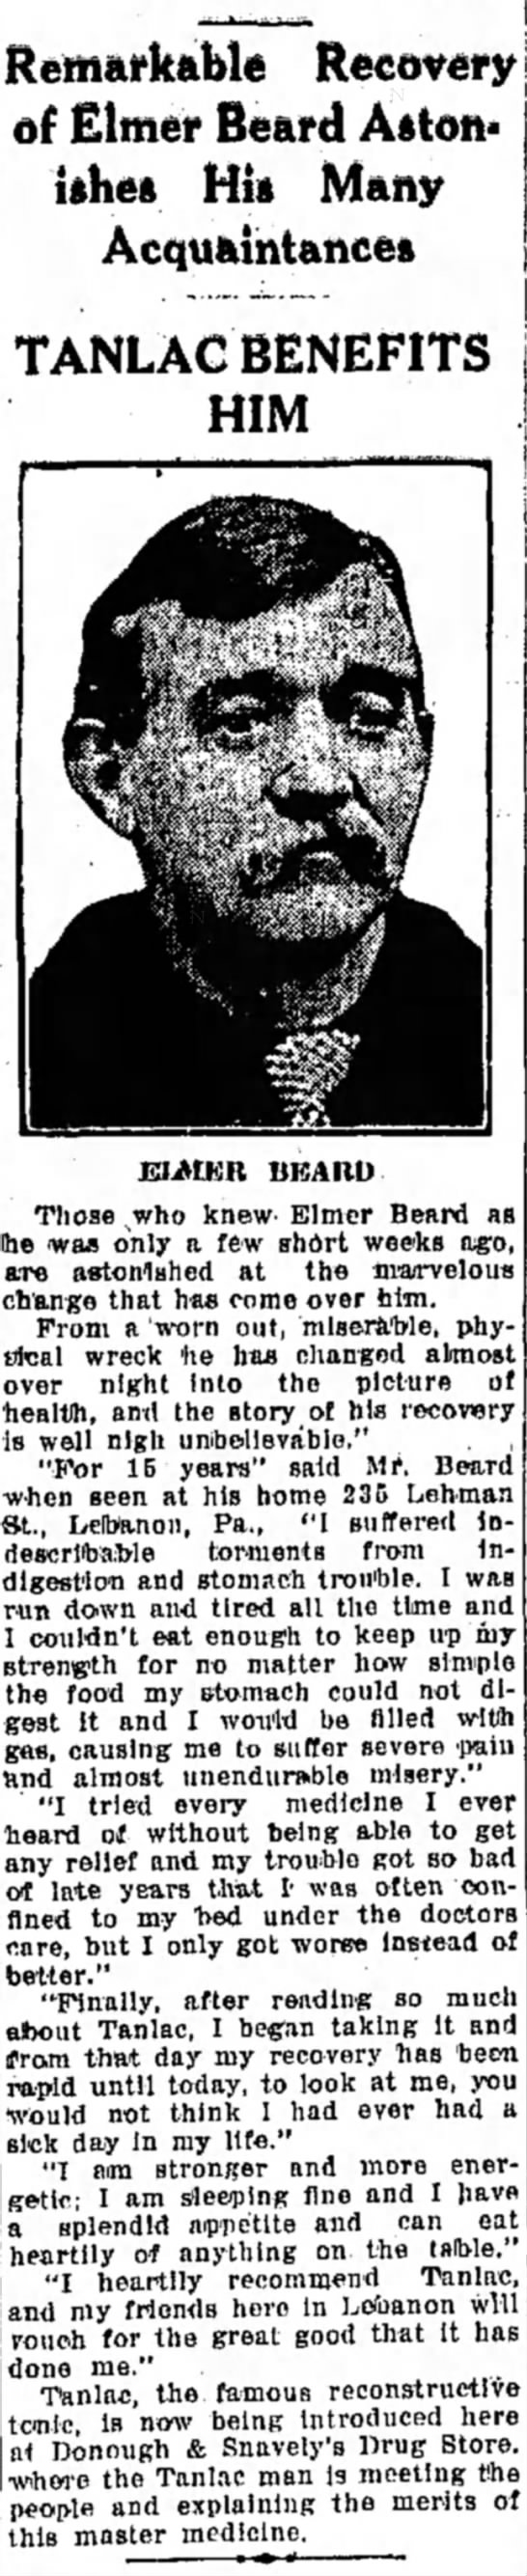 Elmer Beard 1866-1956 - Remarkable Recovery of Elmer Beard Astonishes...